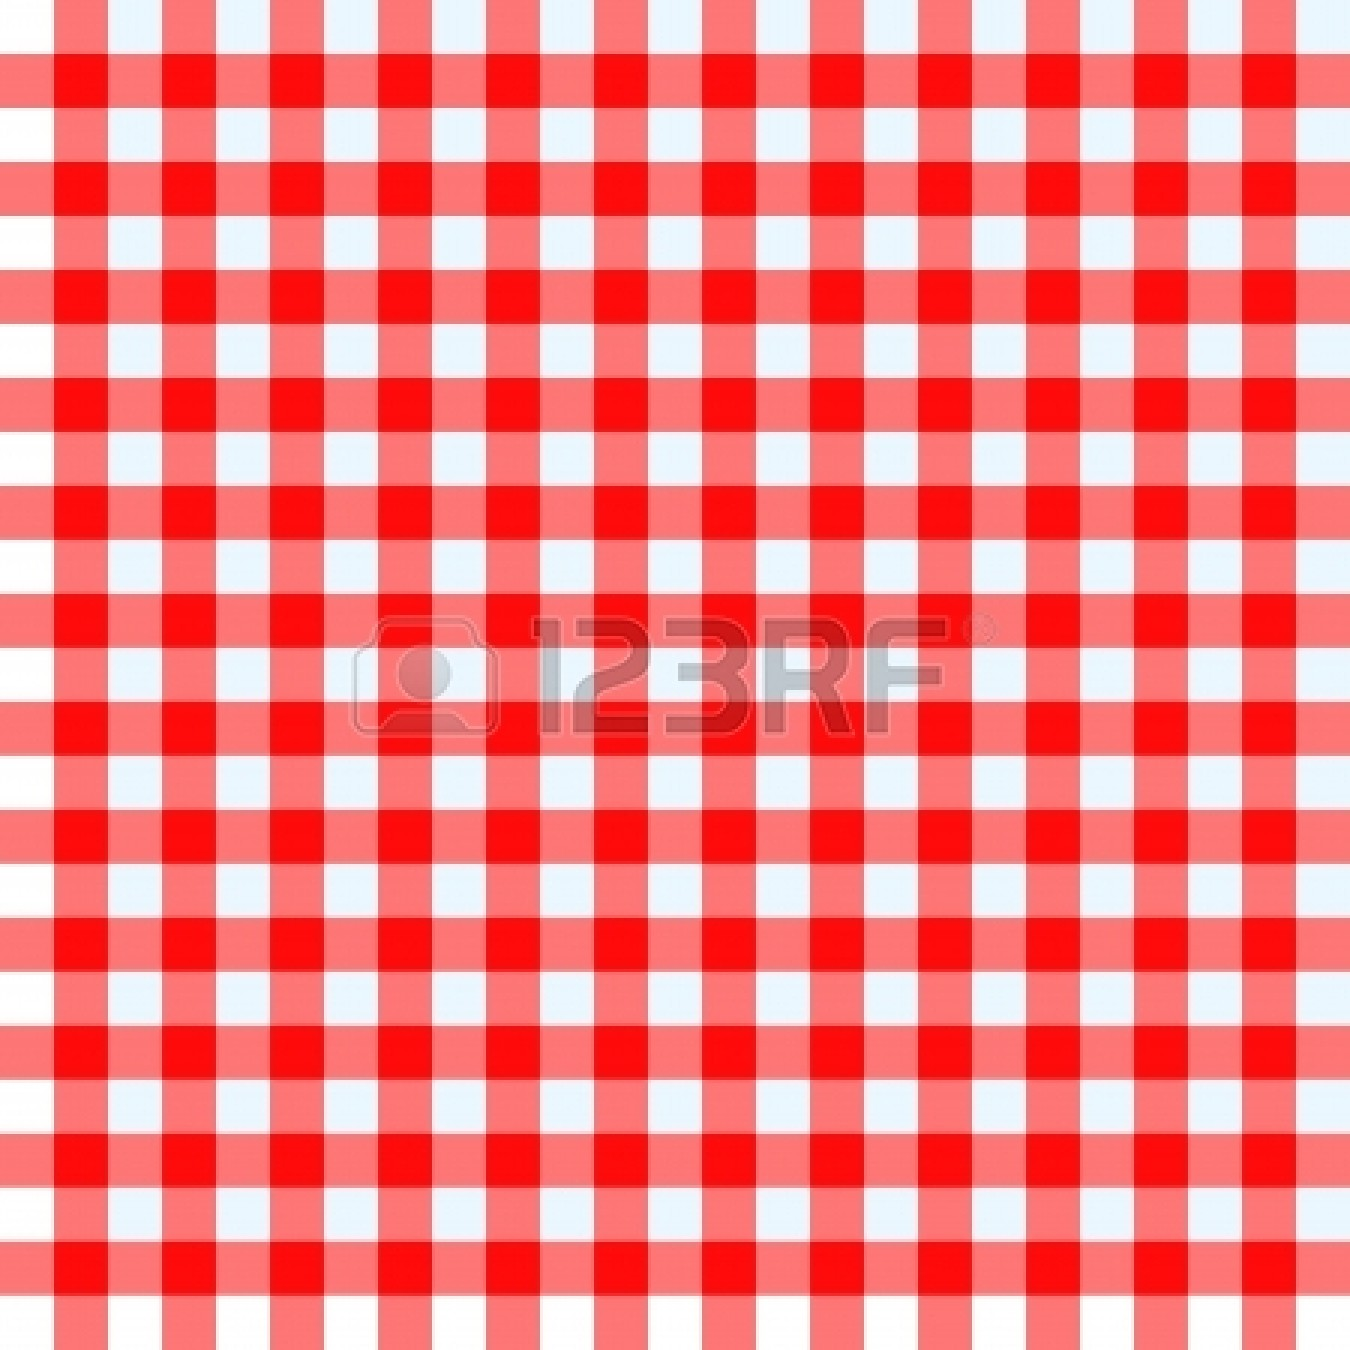 Red and white checkered clipart.